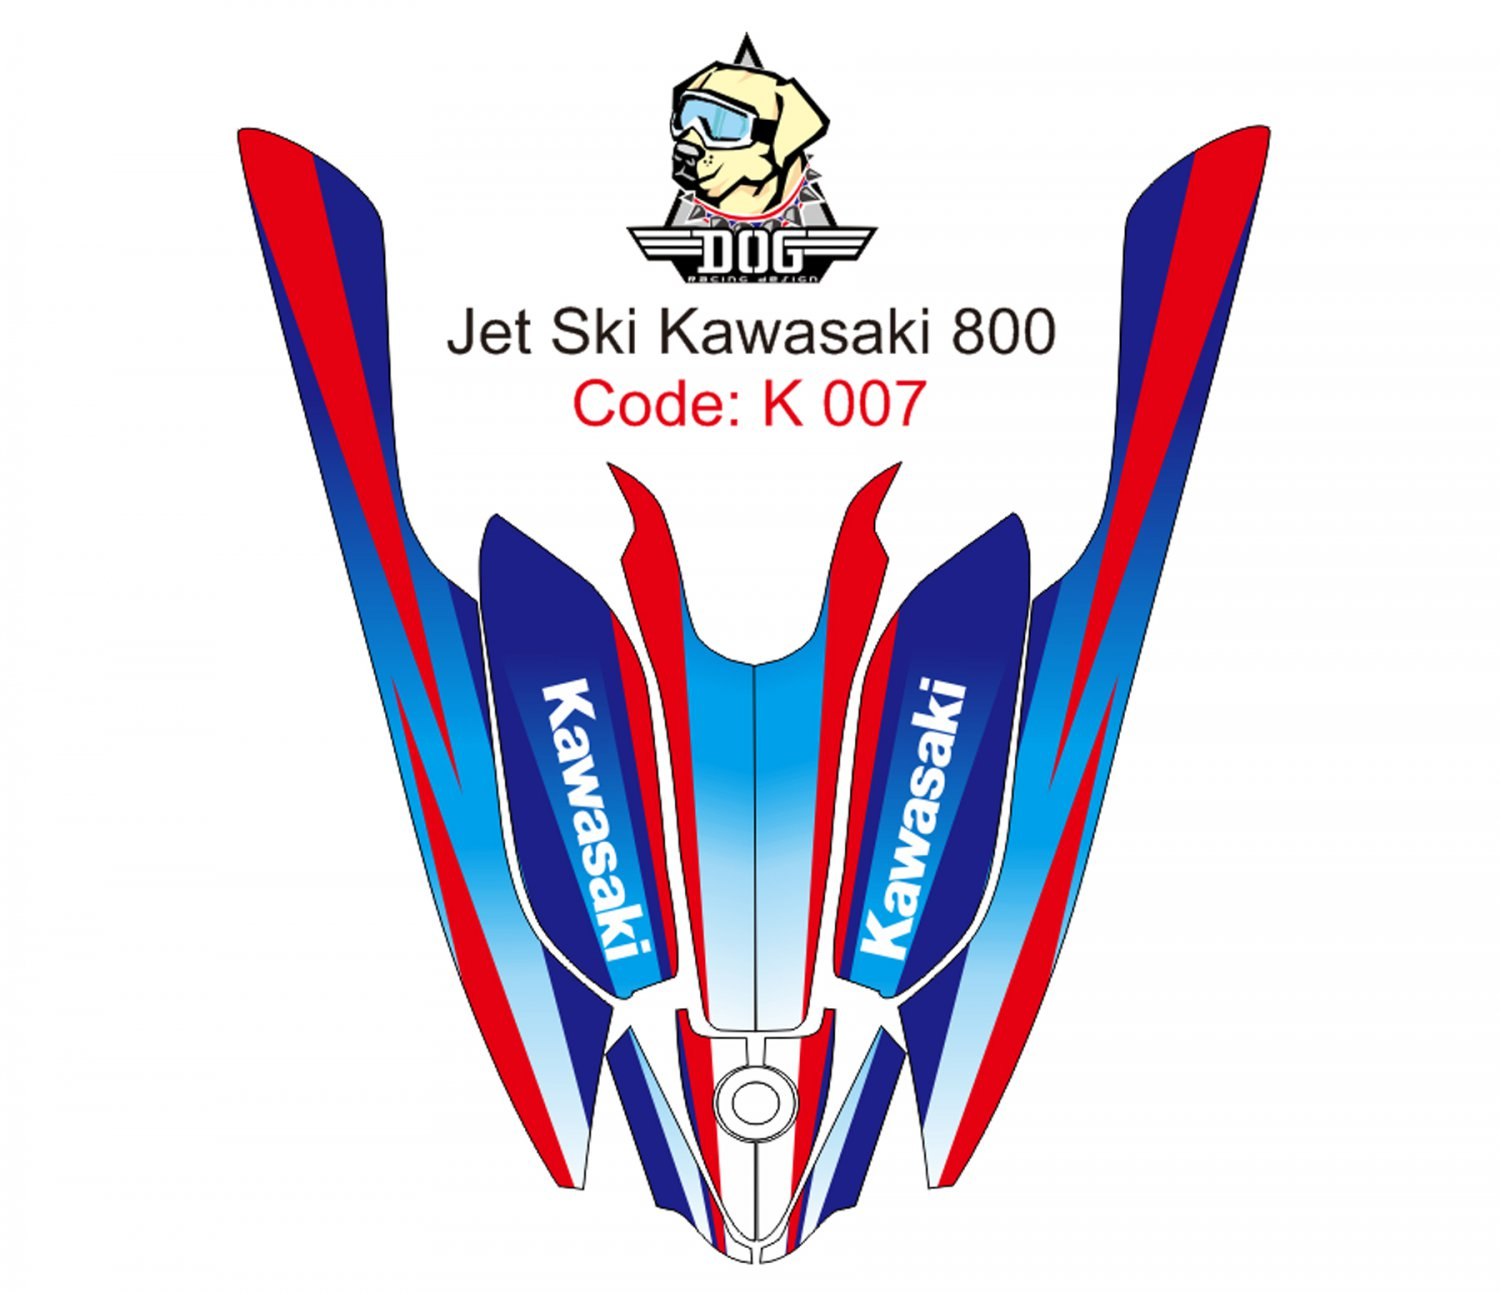 KAWASAKI 800 JET SKI GRAPHIC DECAL KIT CODE.K 007